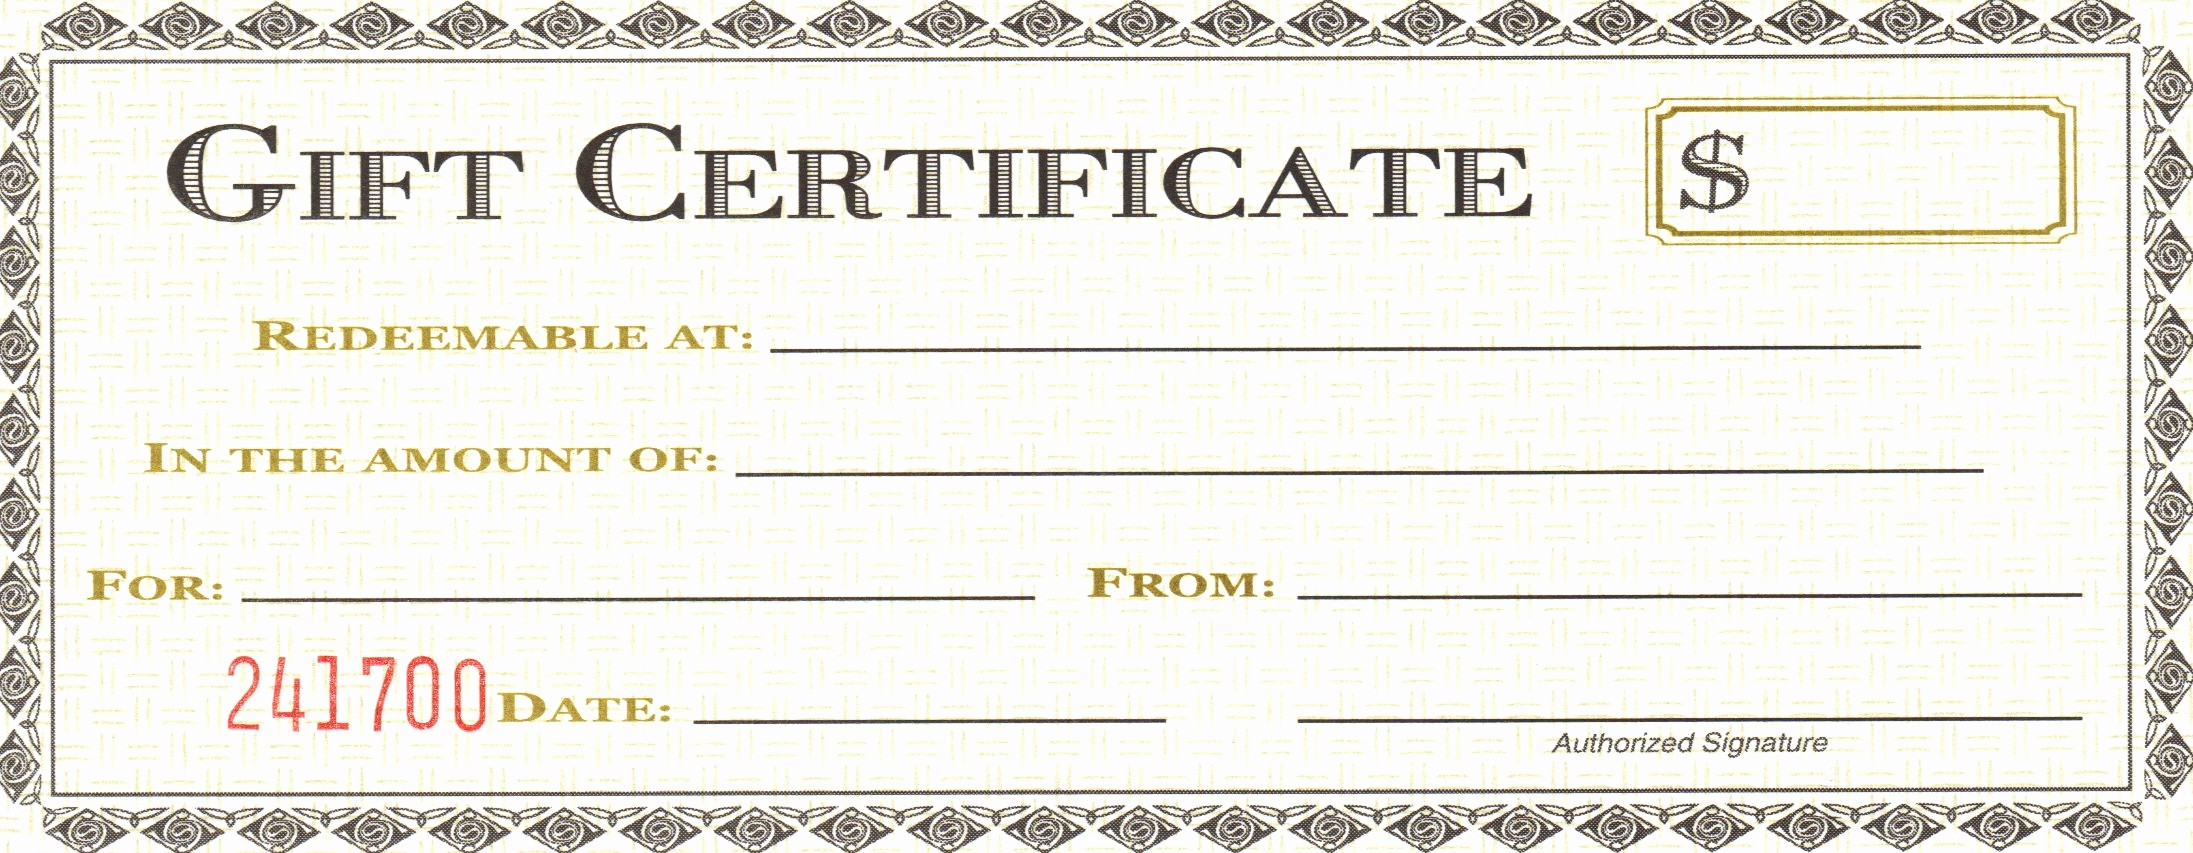 Generic Gift Certificate Template Free Awesome Blank Gift Certificate Template Mughals